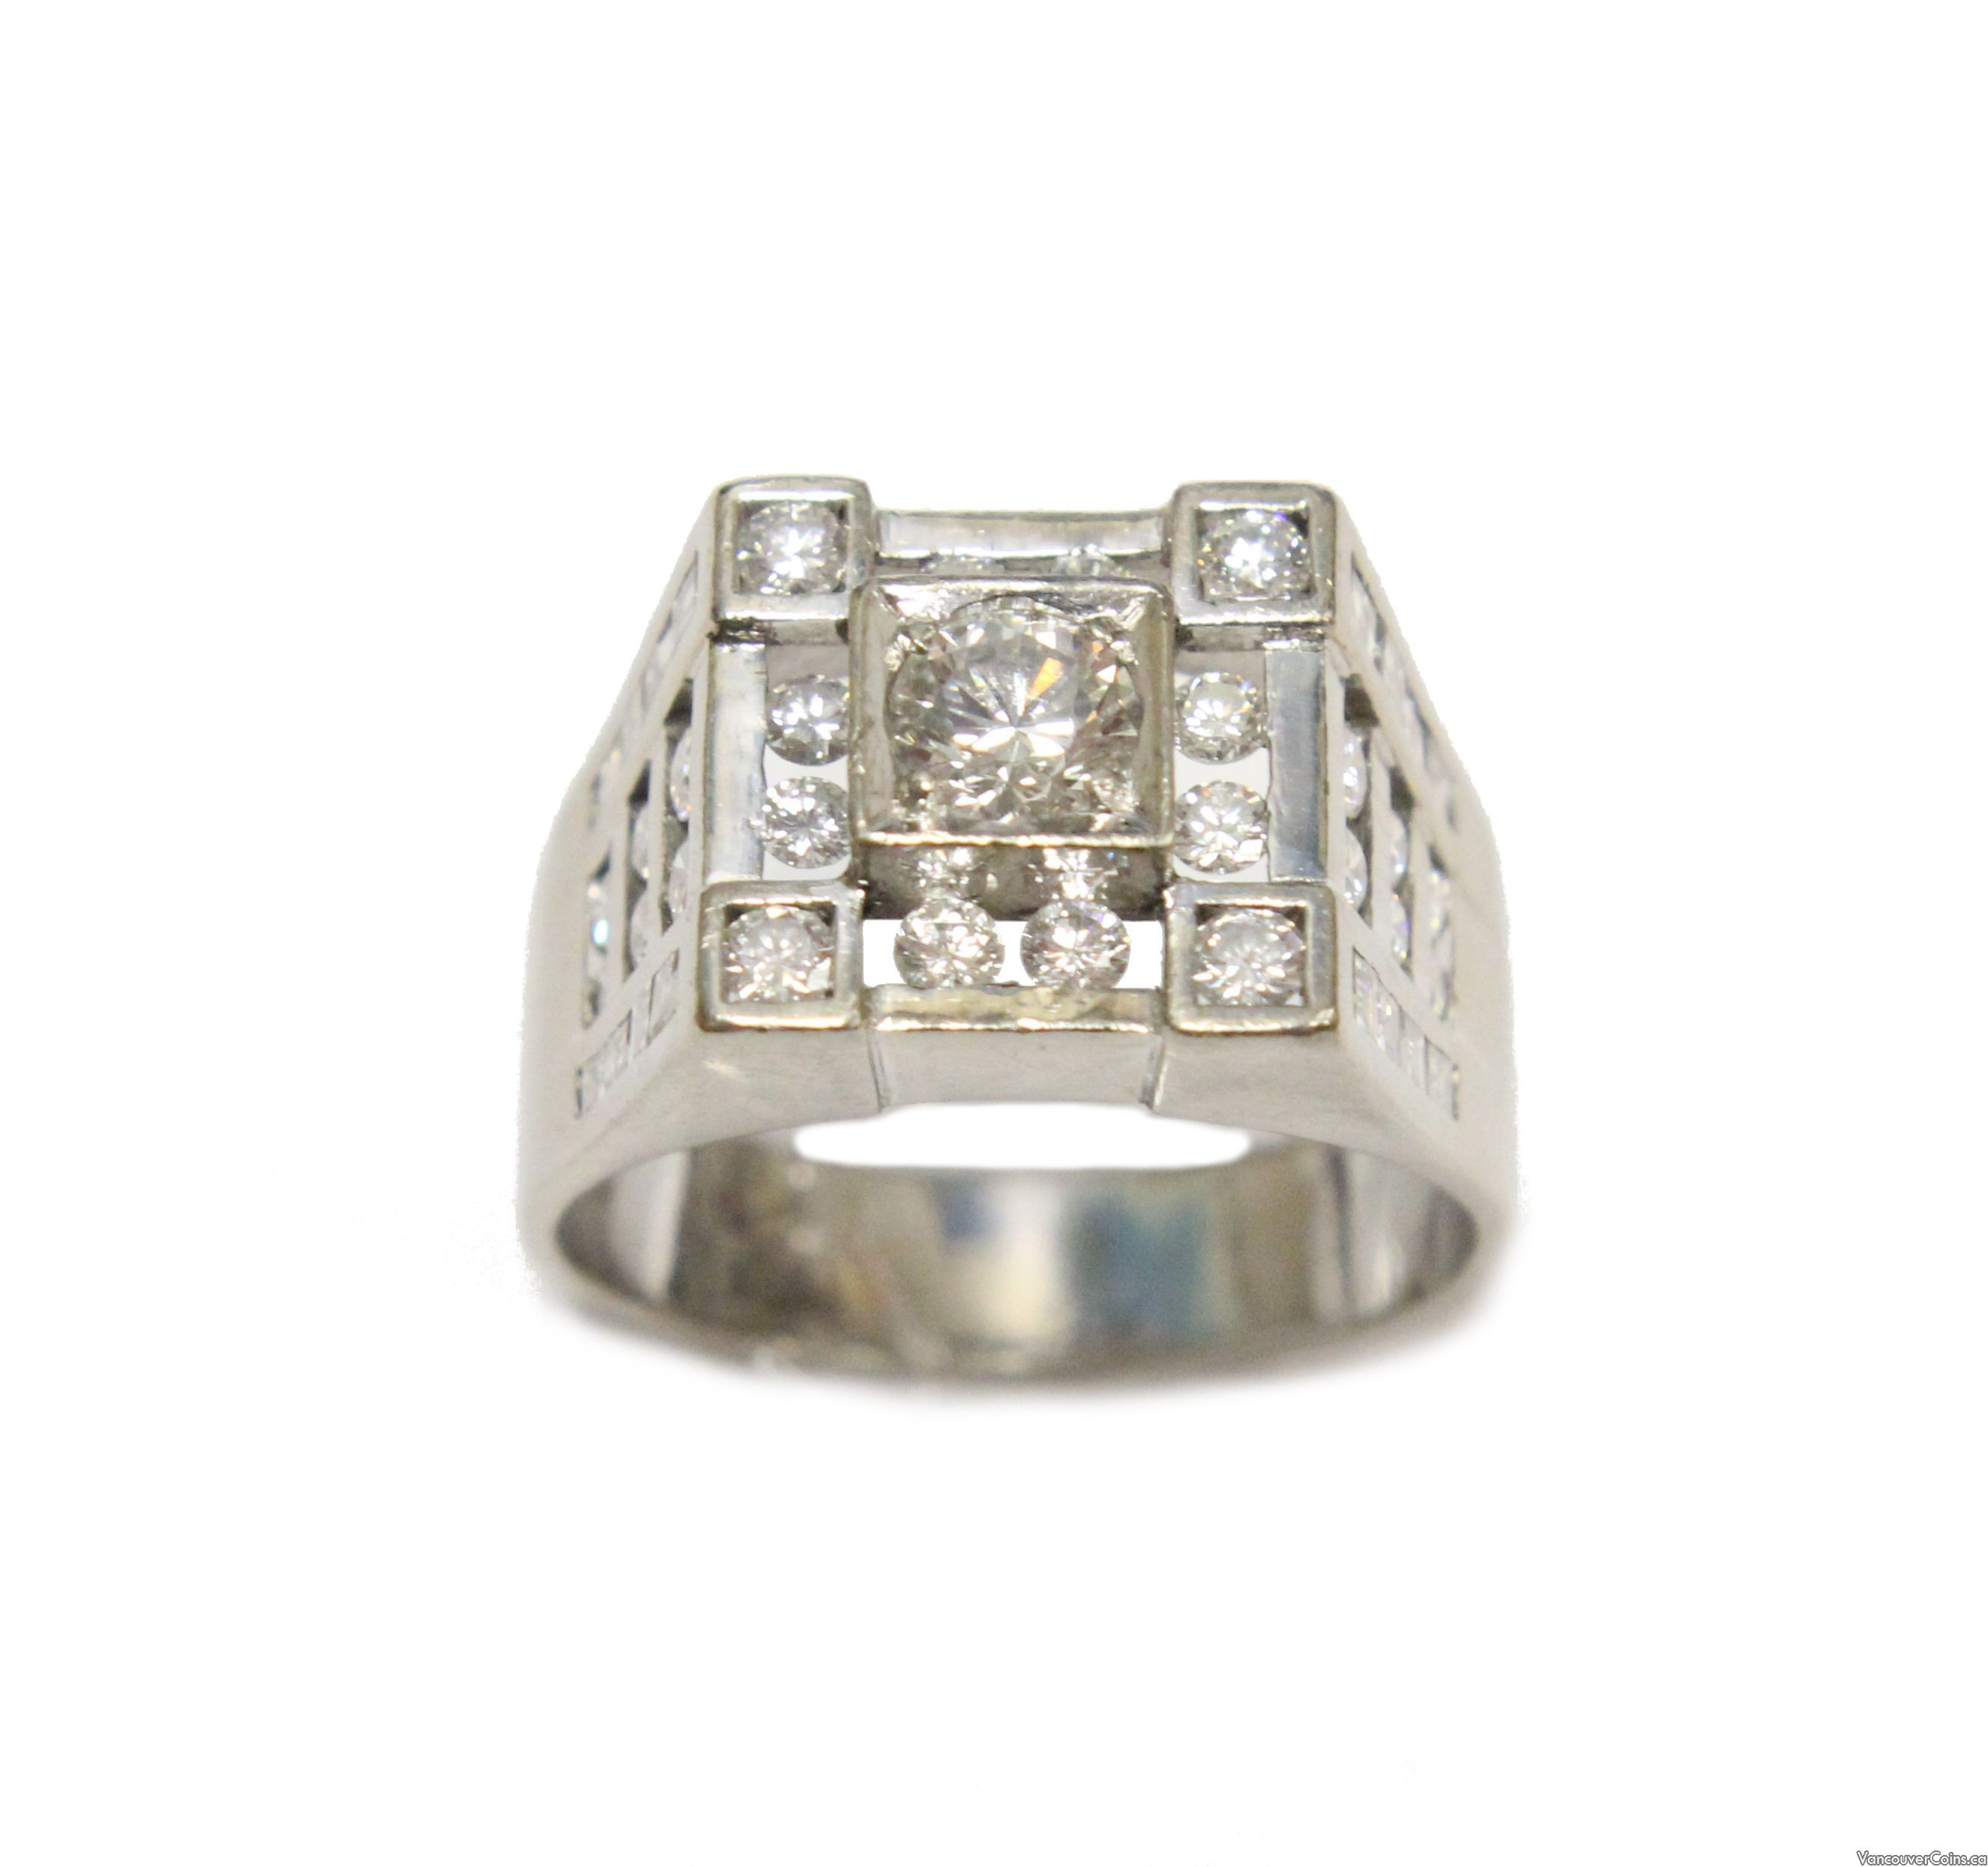 2.17 ct tcw Diamonds mens 14K white gold ring